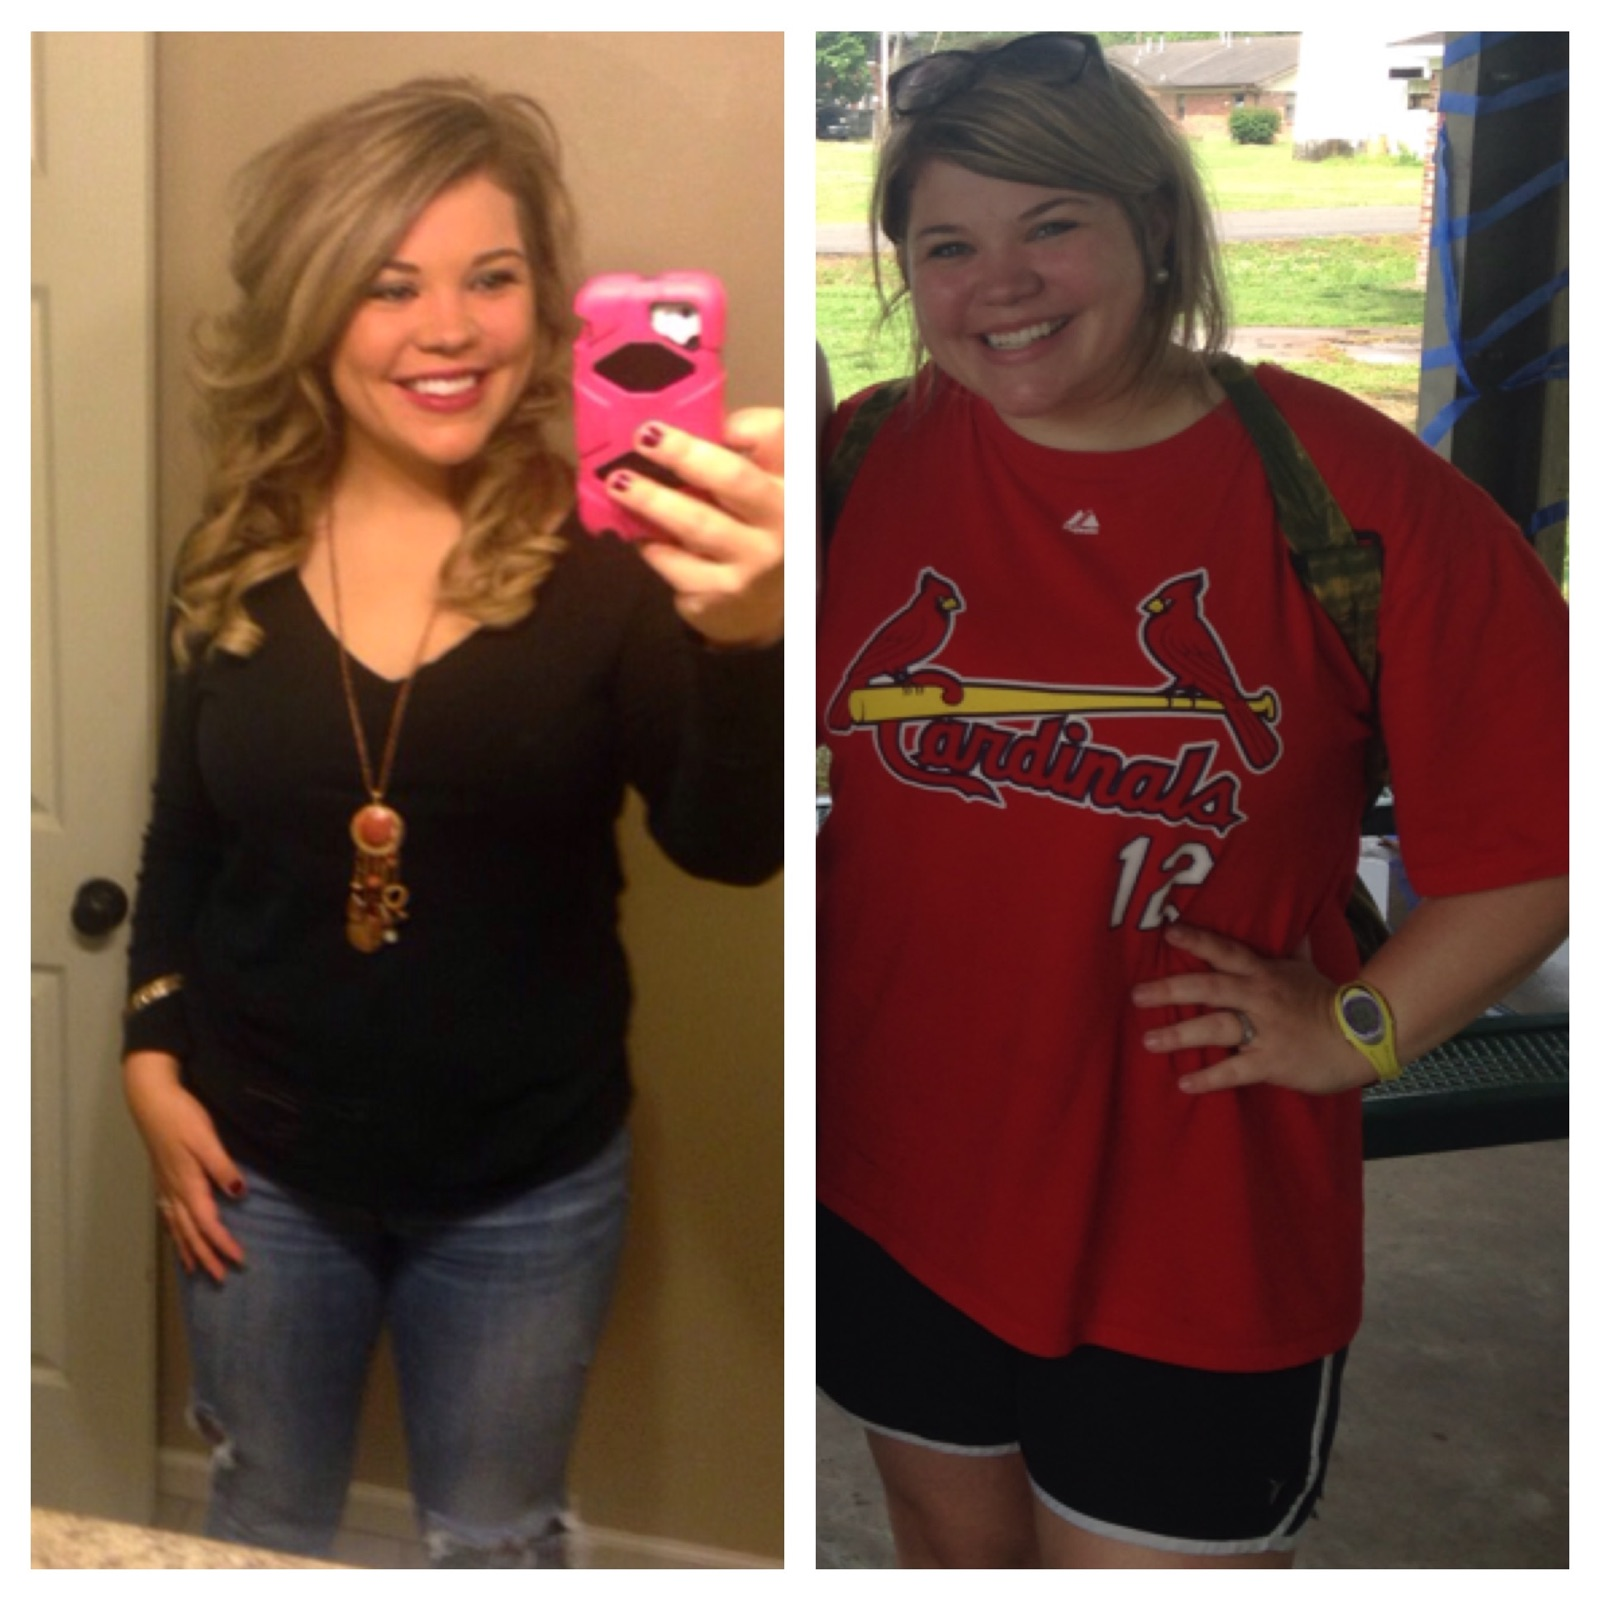 Lindsay lost 72 pounds! See my before and after weight loss pictures, and read amazing weight loss success stories from real women and their best weight loss diet plans and programs. Motivation to lose weight with walking and inspiration from before and after weightloss pics and photos.